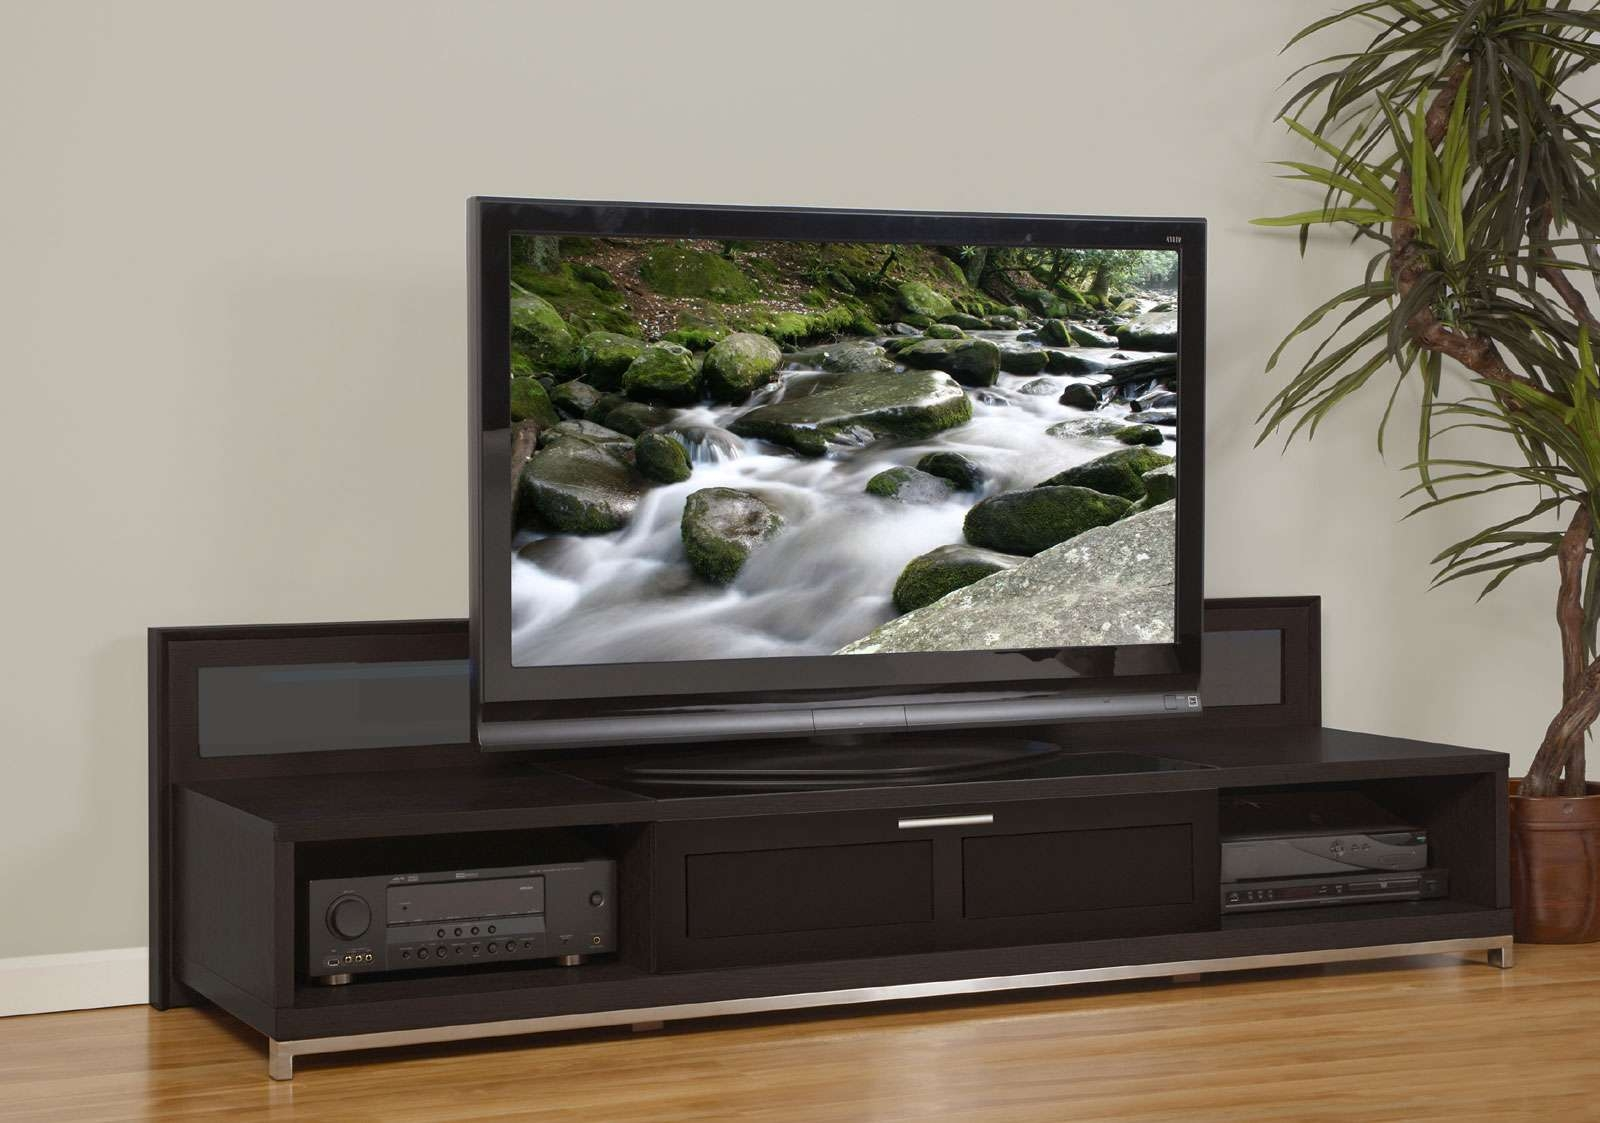 Unique Tv Stands For 60 Inch Flat Screens 20 For Simple Home With Regard To Unique Tv Stands For Flat Screens (View 12 of 20)